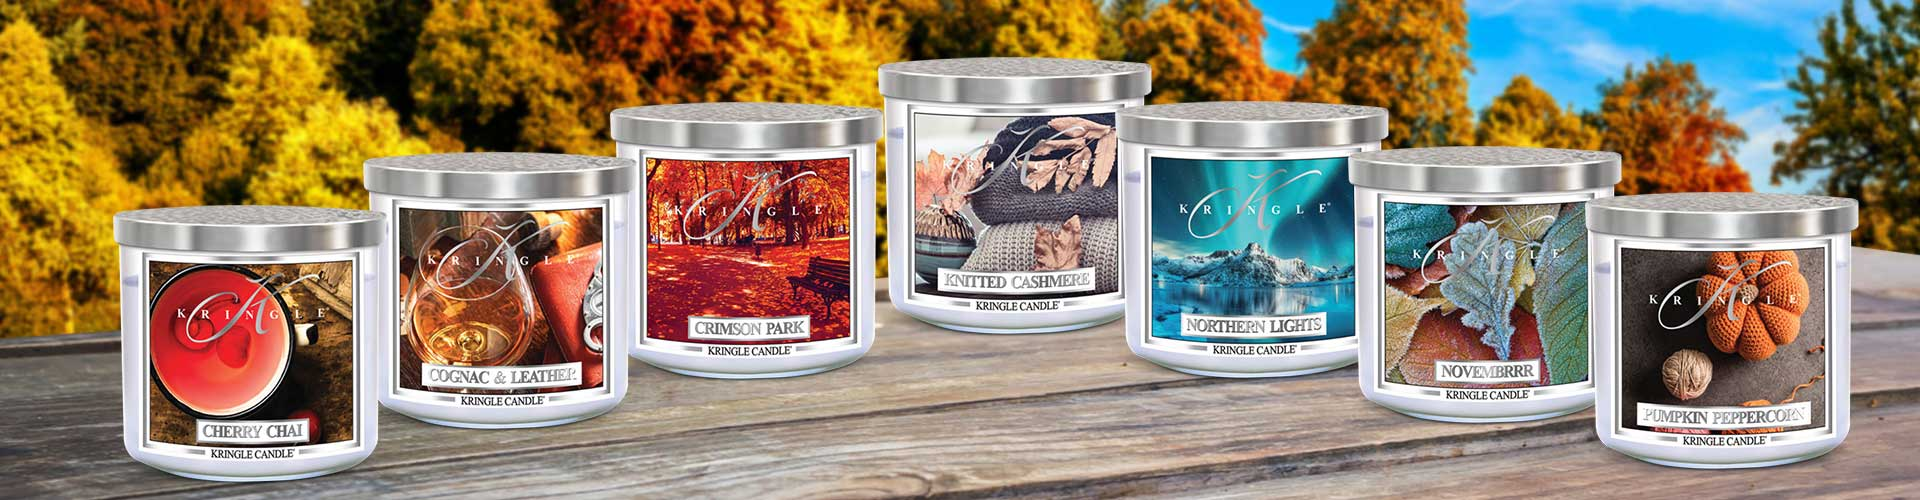 Graphic showing an assortment of Kringle Candle's Candle Tumblers sitting on a picnic table with hot air balloons in the background.